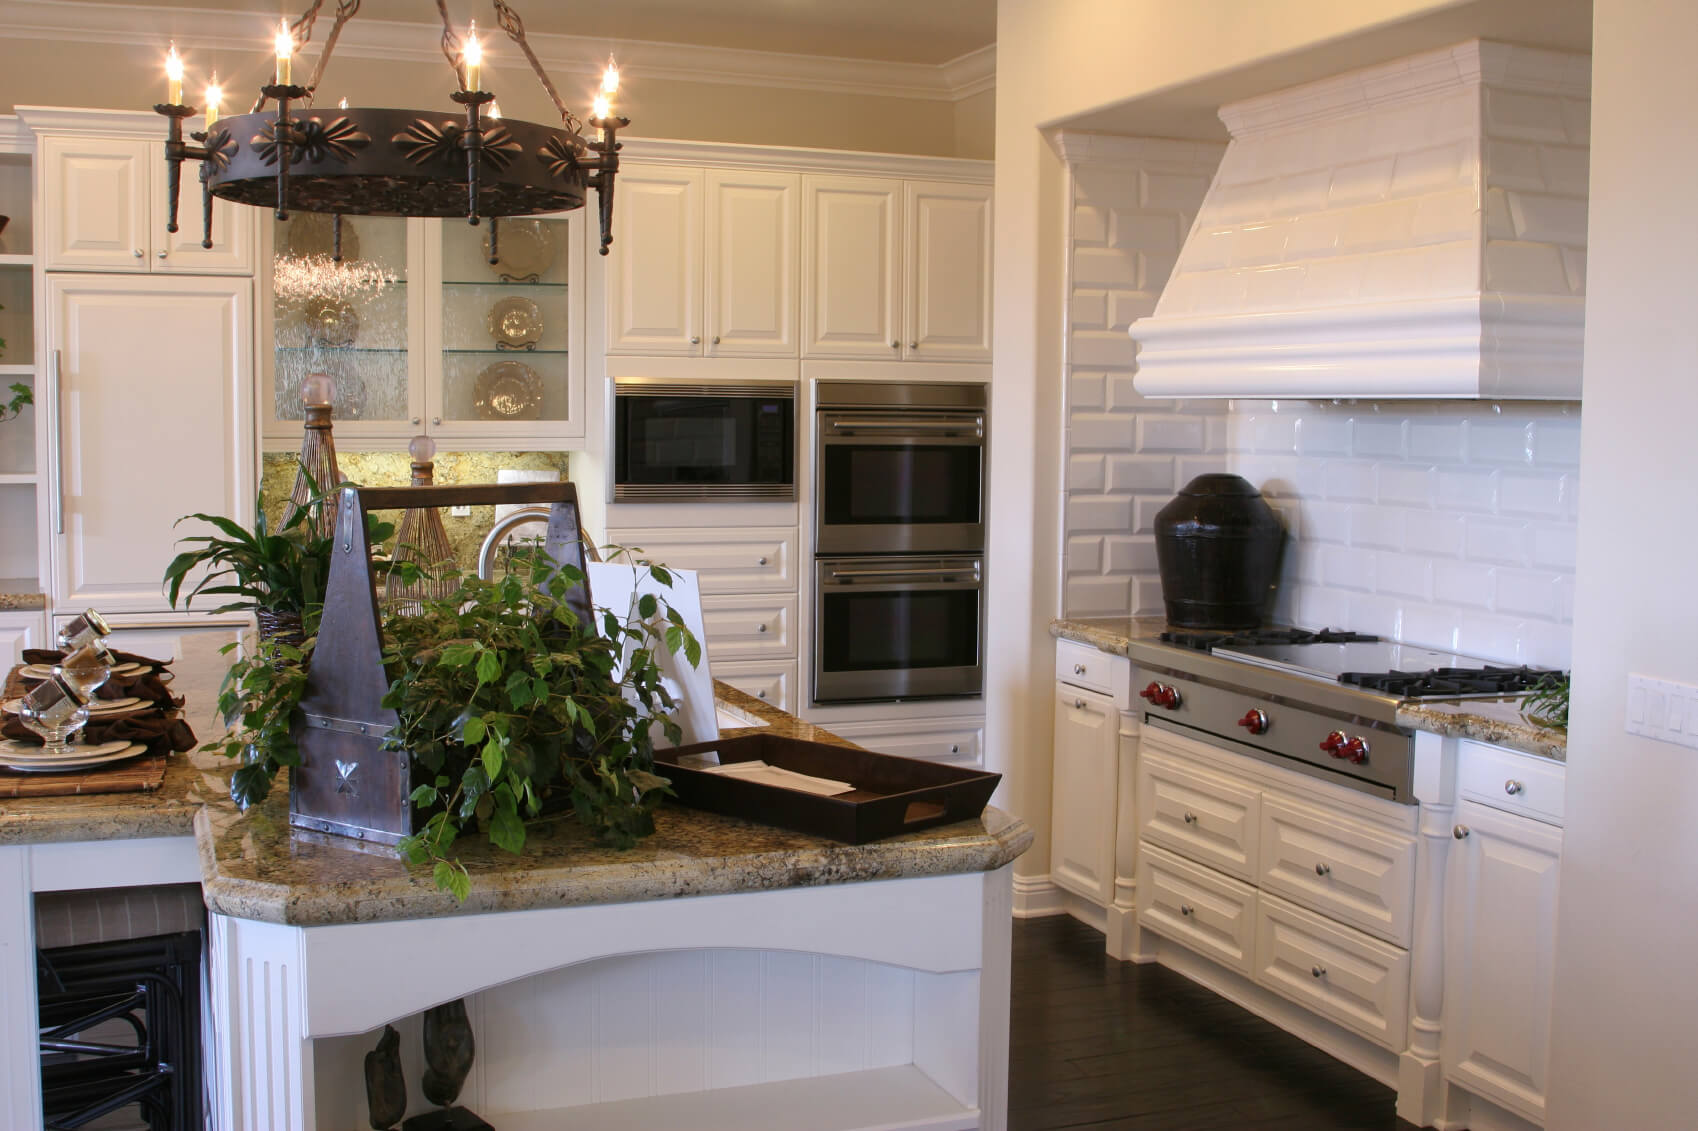 dream kitchen designs white kitchen dark floors Kitchen featuring contrast of bright white cabinetry and tile backsplash with dark wood flooring and